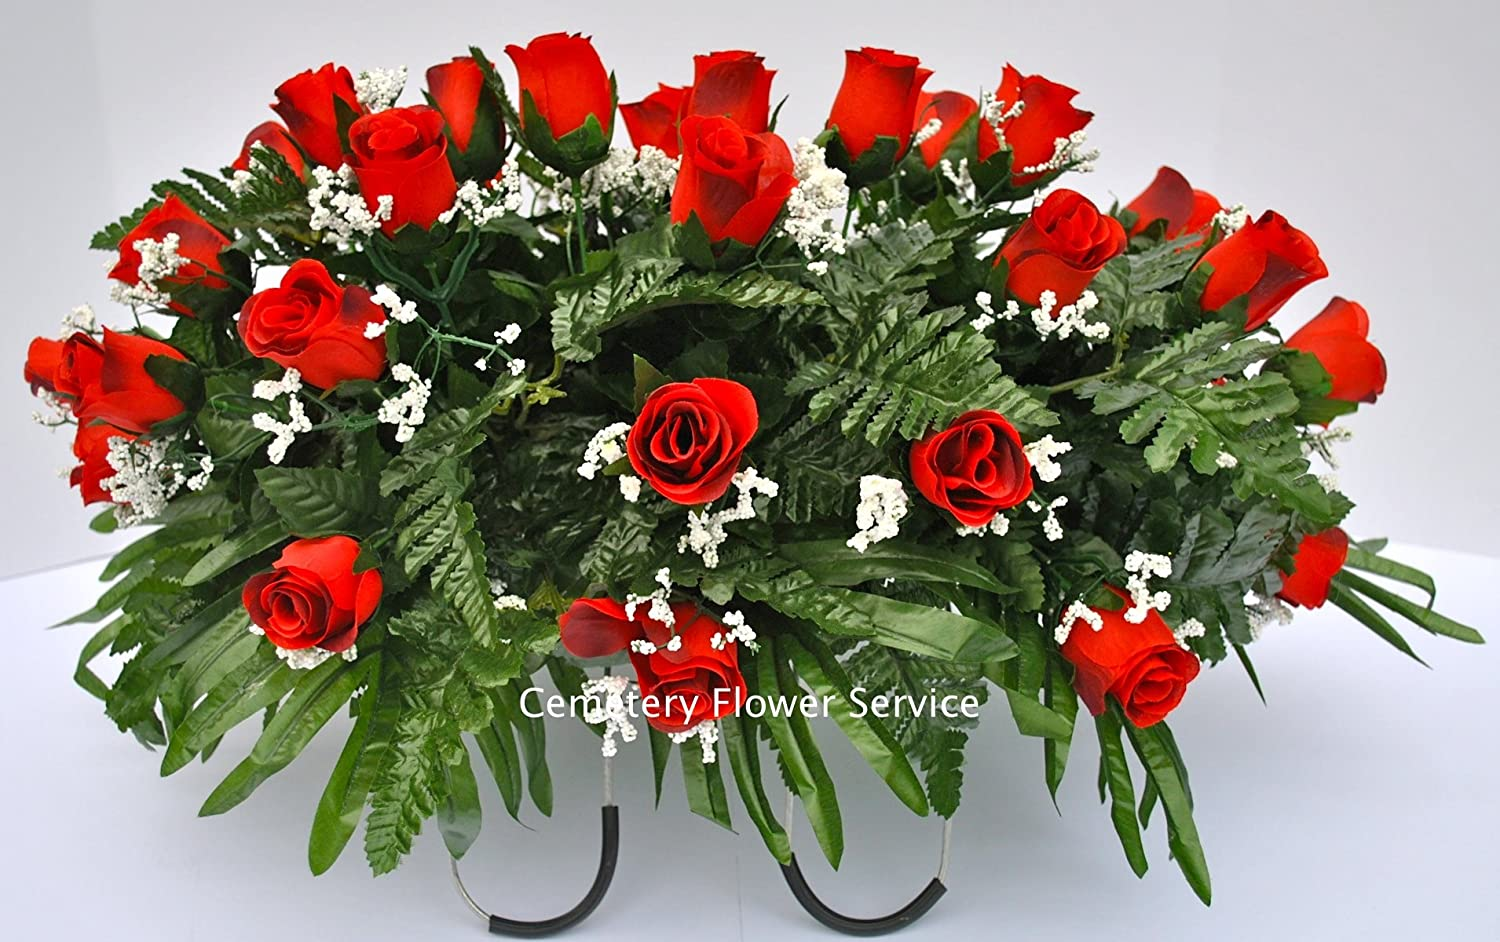 Cemetery Flowers for Grave Decoration with Red Rose Buds and Baby's Breath made into a Saddle Arrangement for Headstones